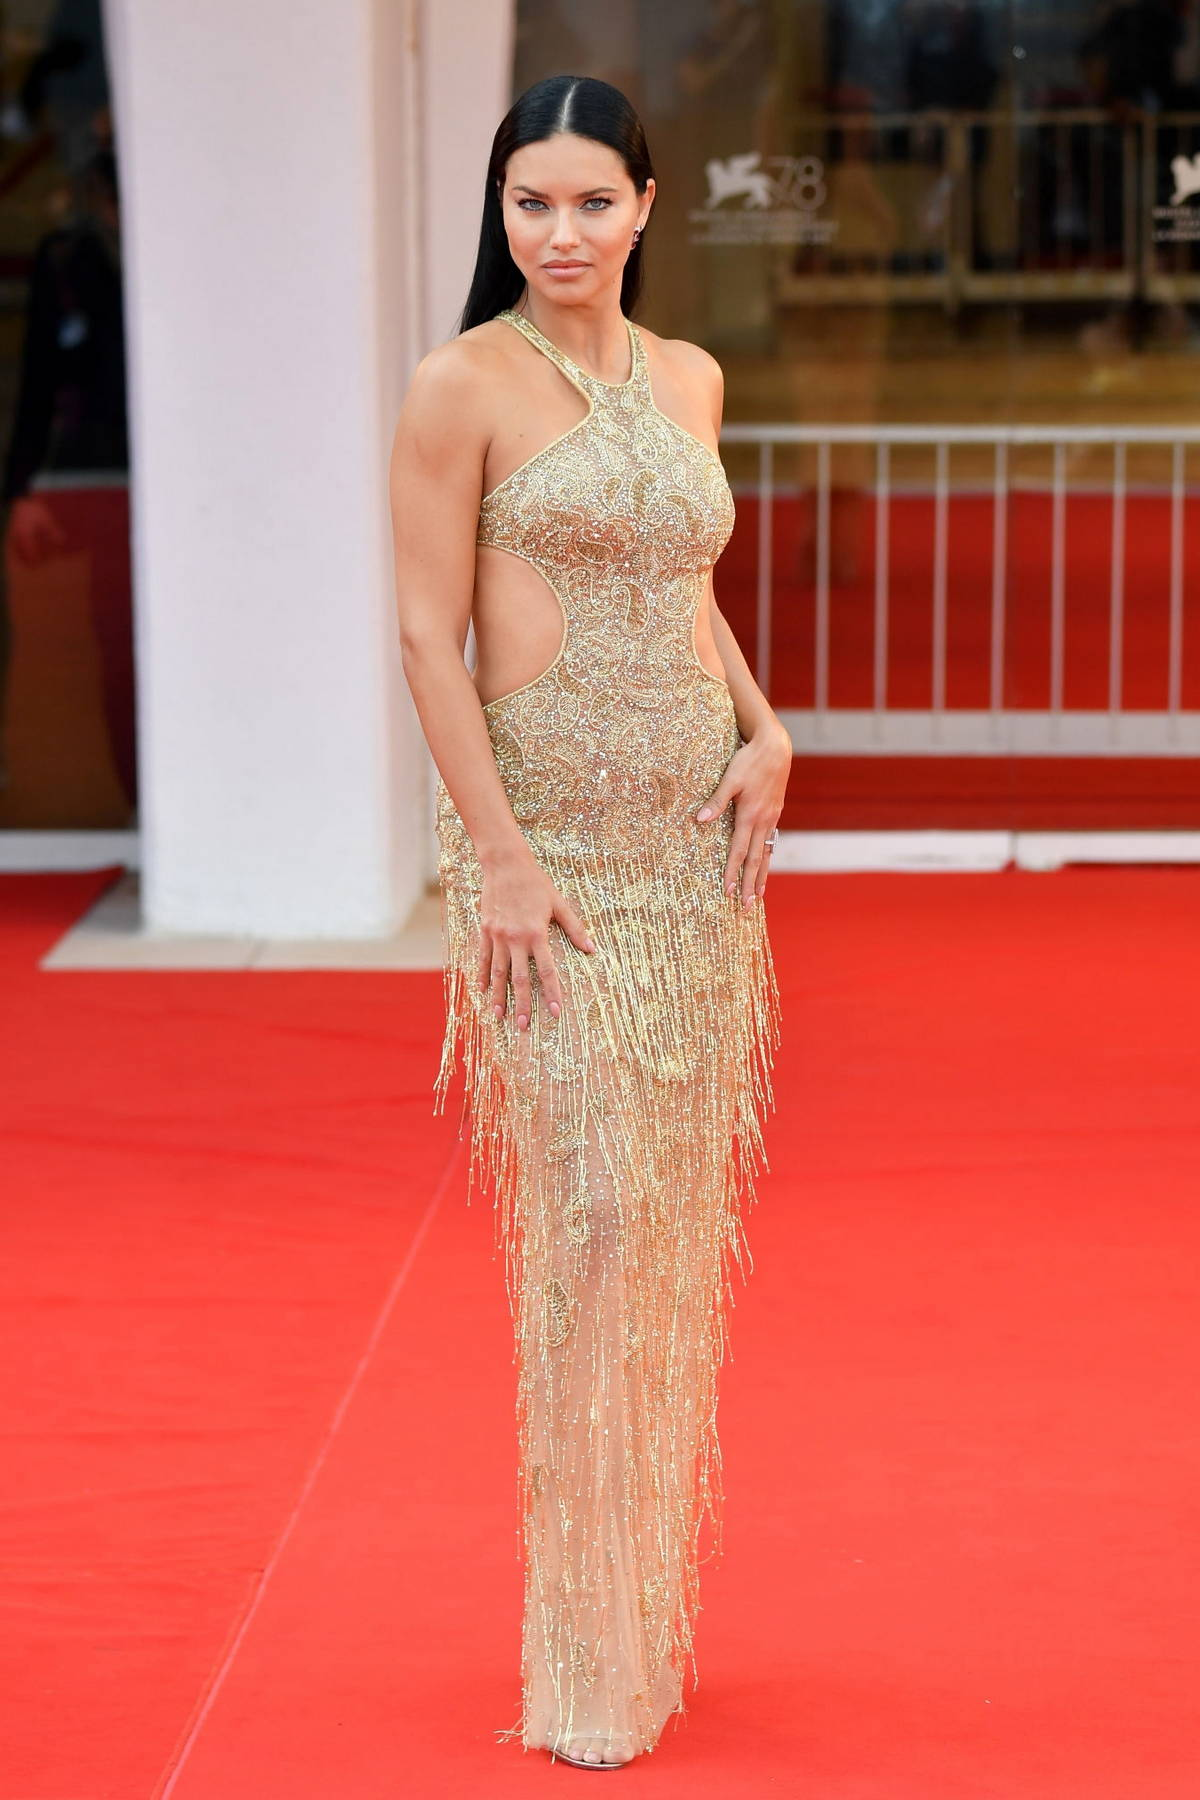 Adriana Lima attends the Premiere of 'Dune' during the 78th Venice International Film Festival in Venice, Italy